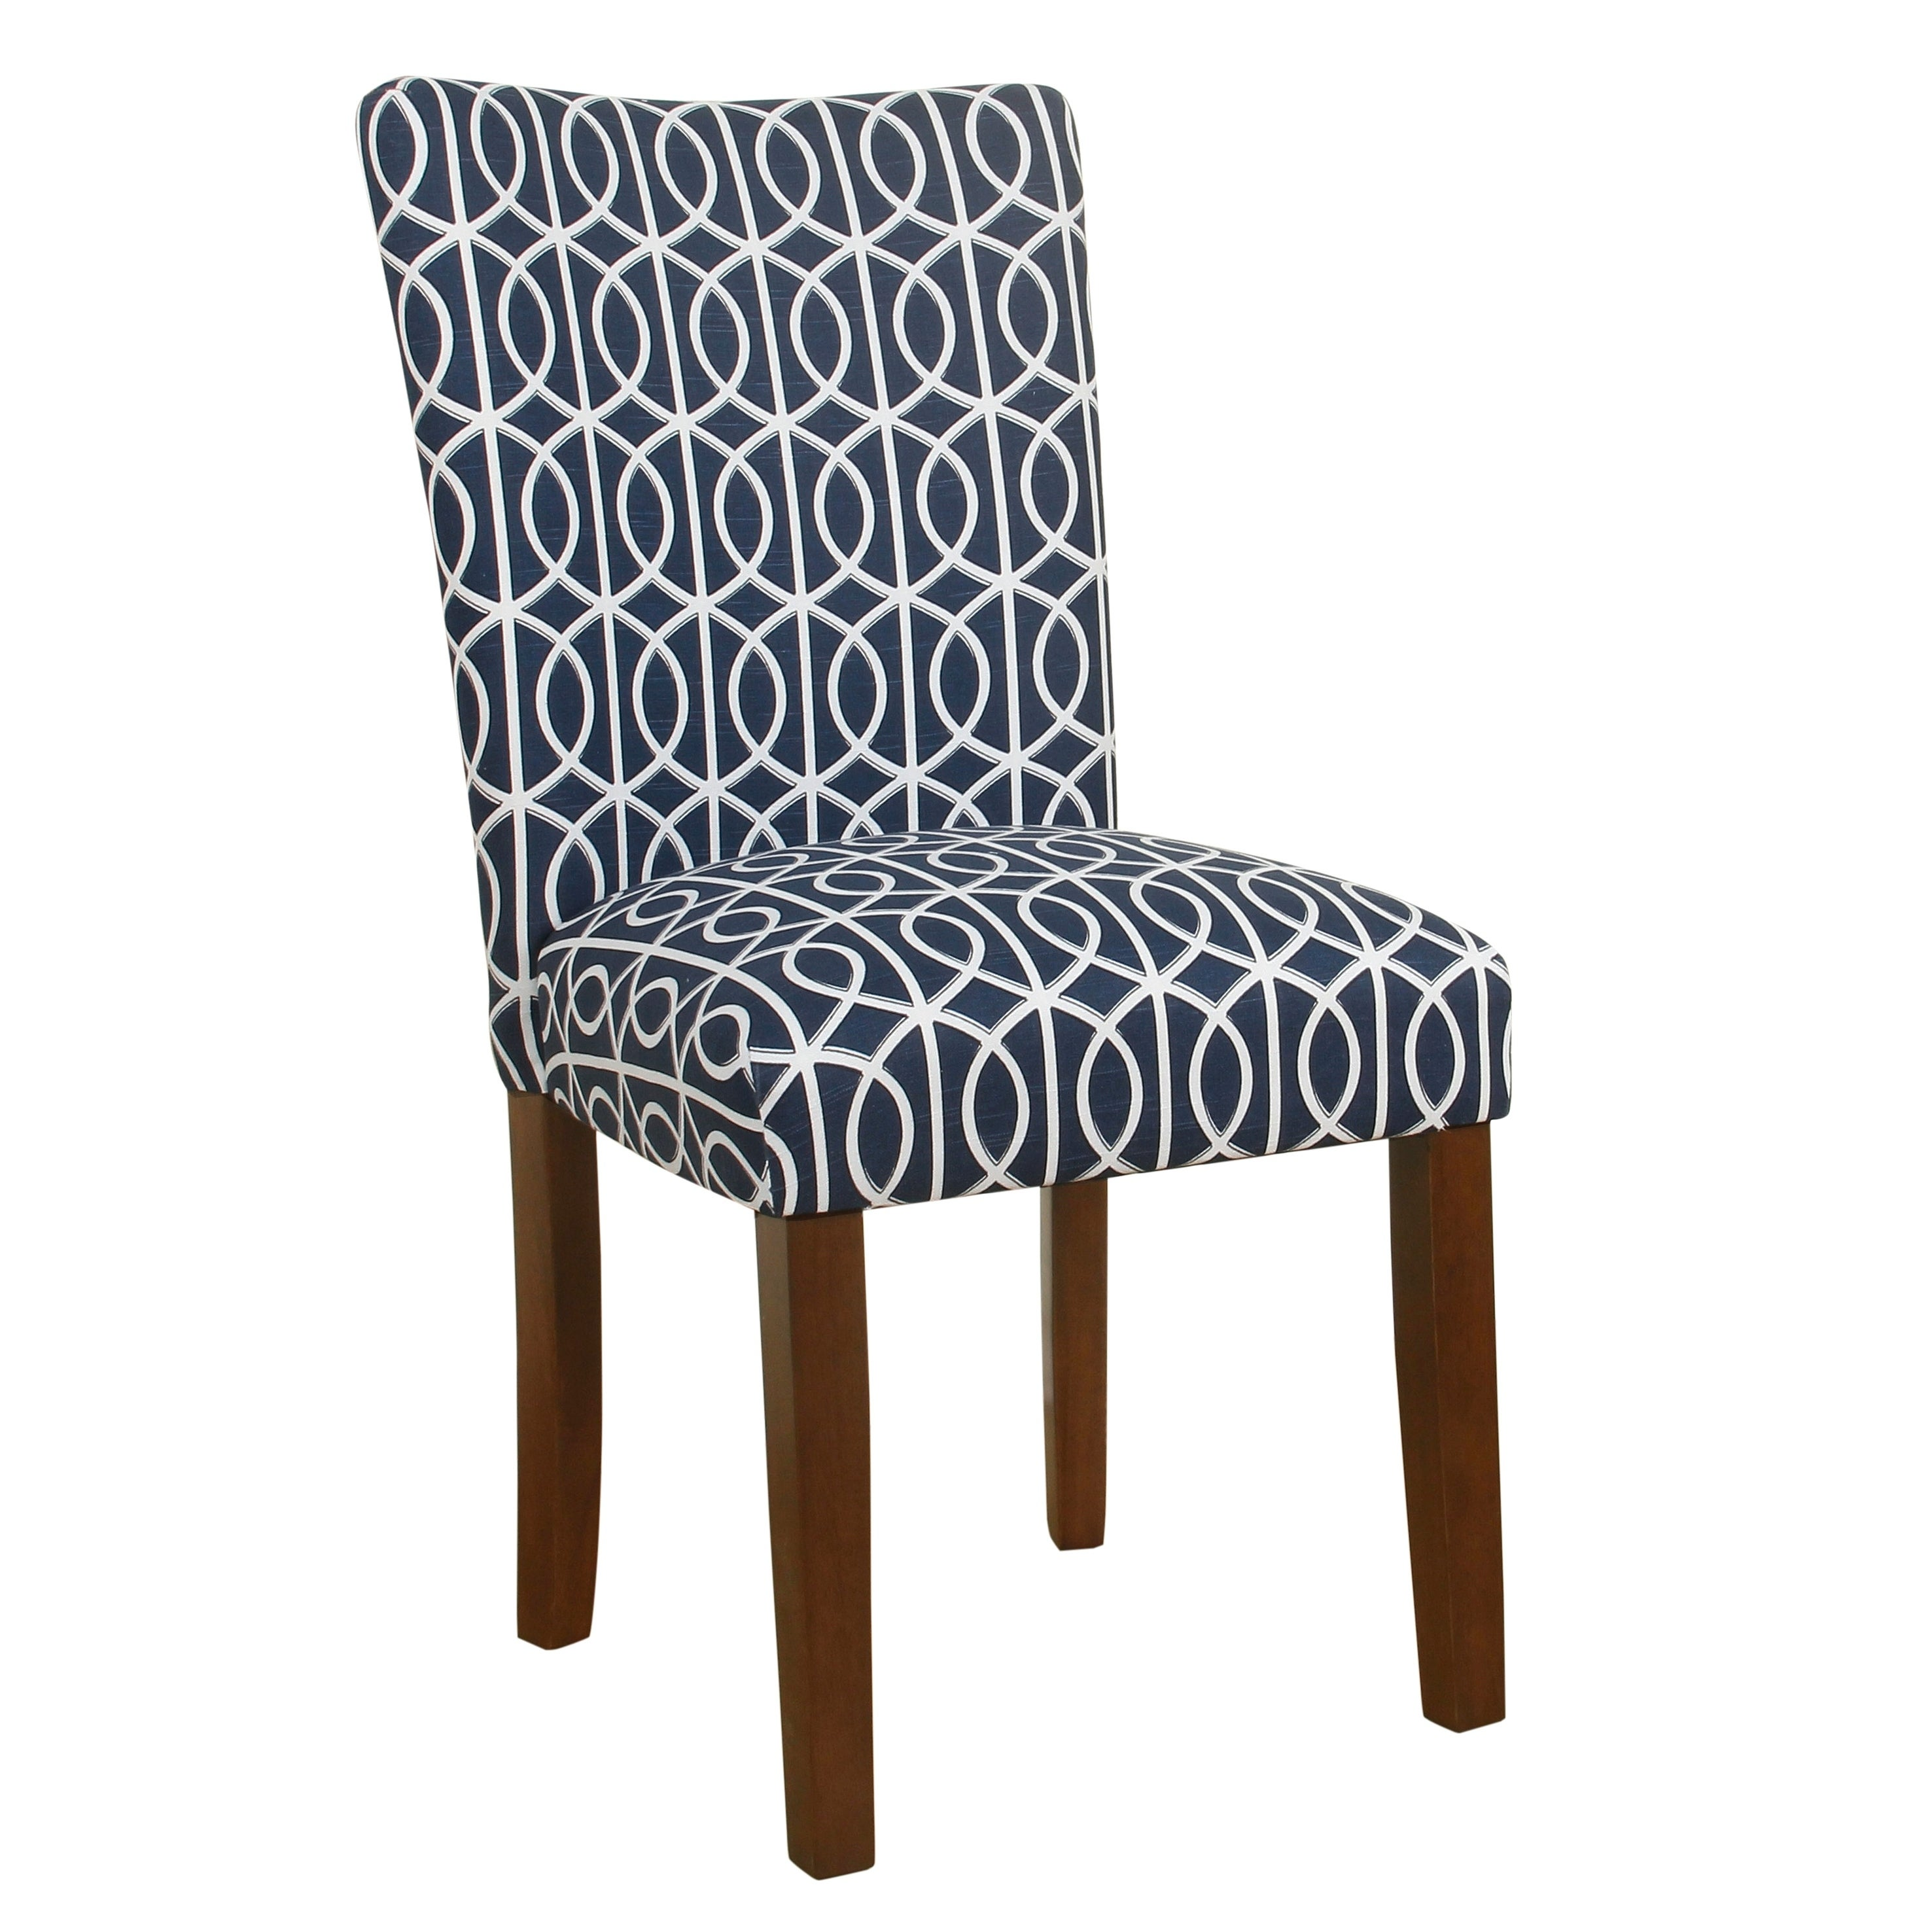 Trellis Patterned Fabric Upholstered Parsons Chair With Wooden Legs Blue And White Set Of Two